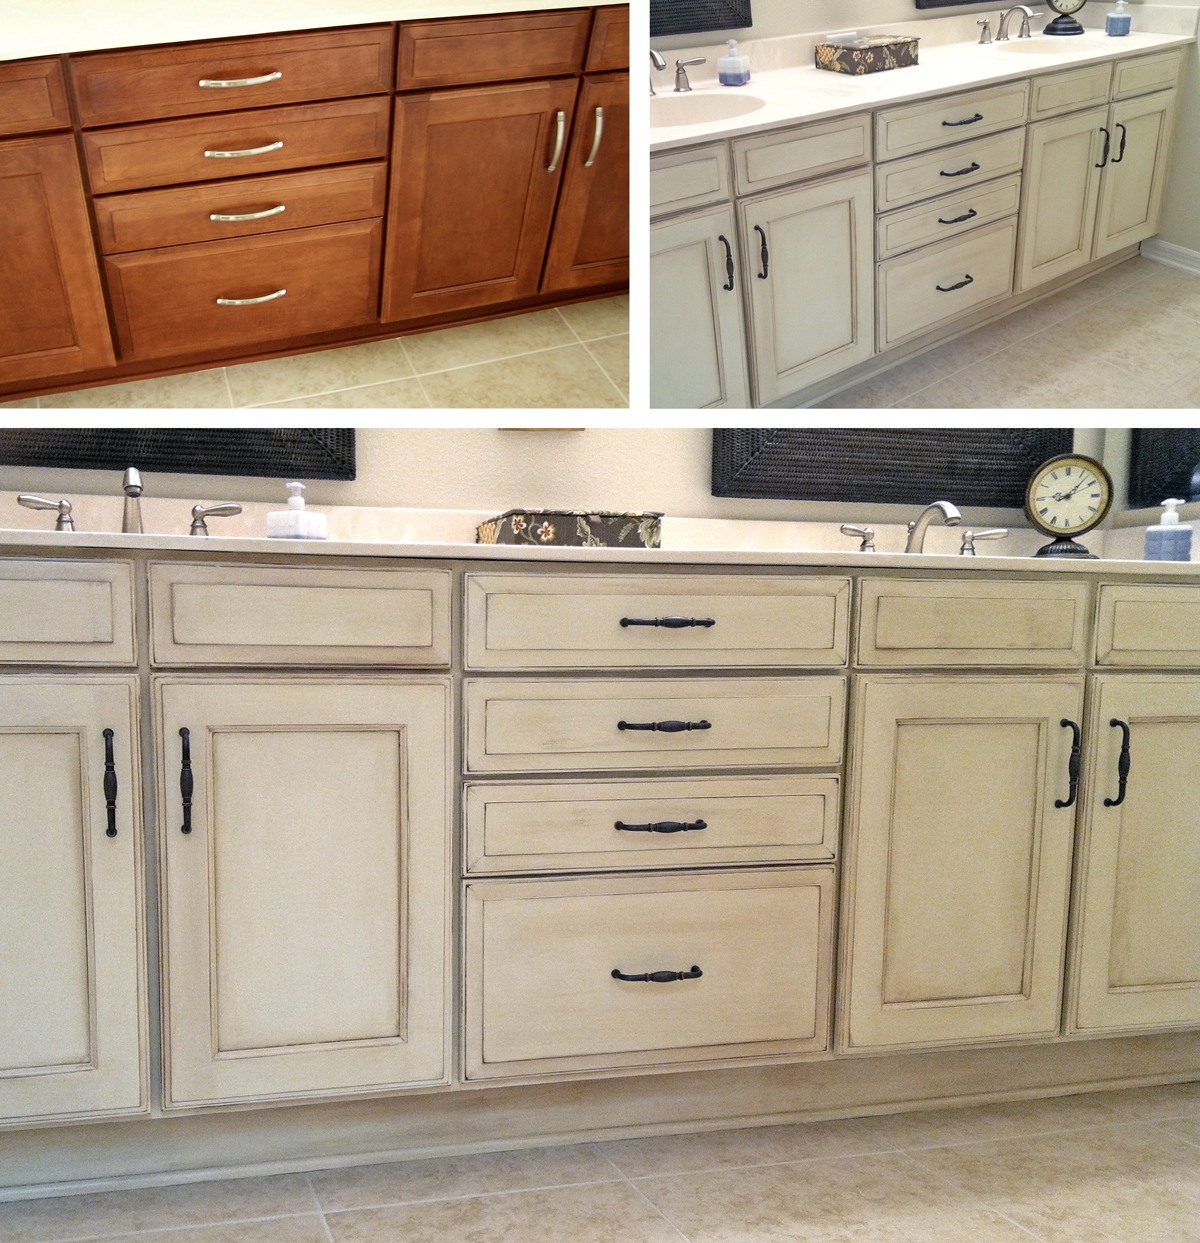 Permalink to Can You Use Kitchen Cabinet Bathroom Vanity